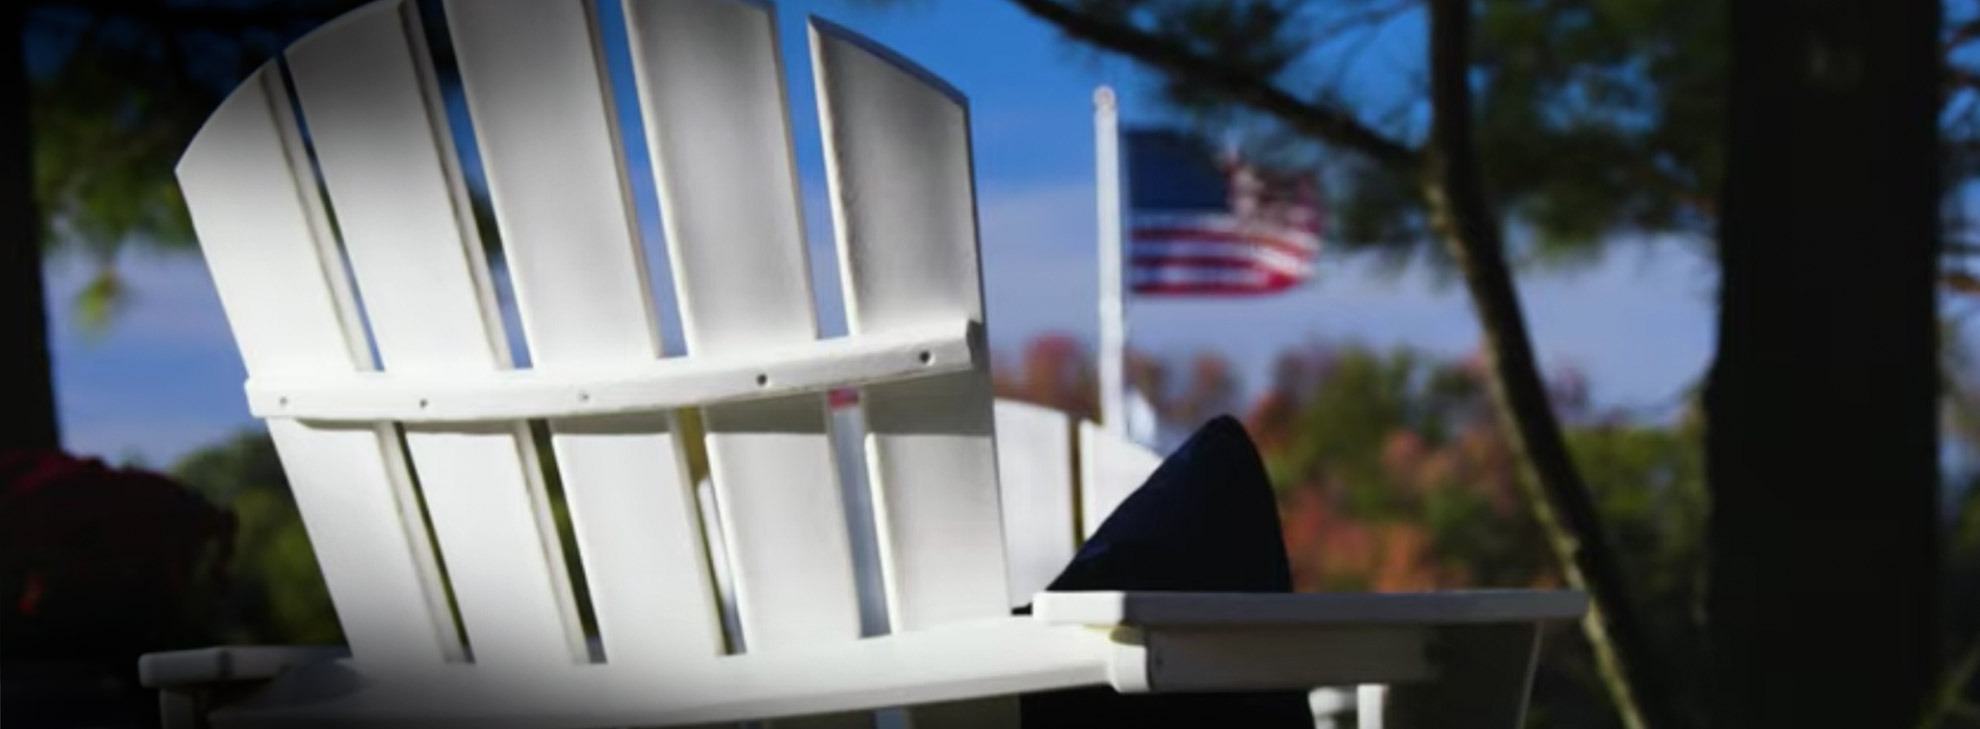 White POLYWOOD Adirondack Chair in front of American flag